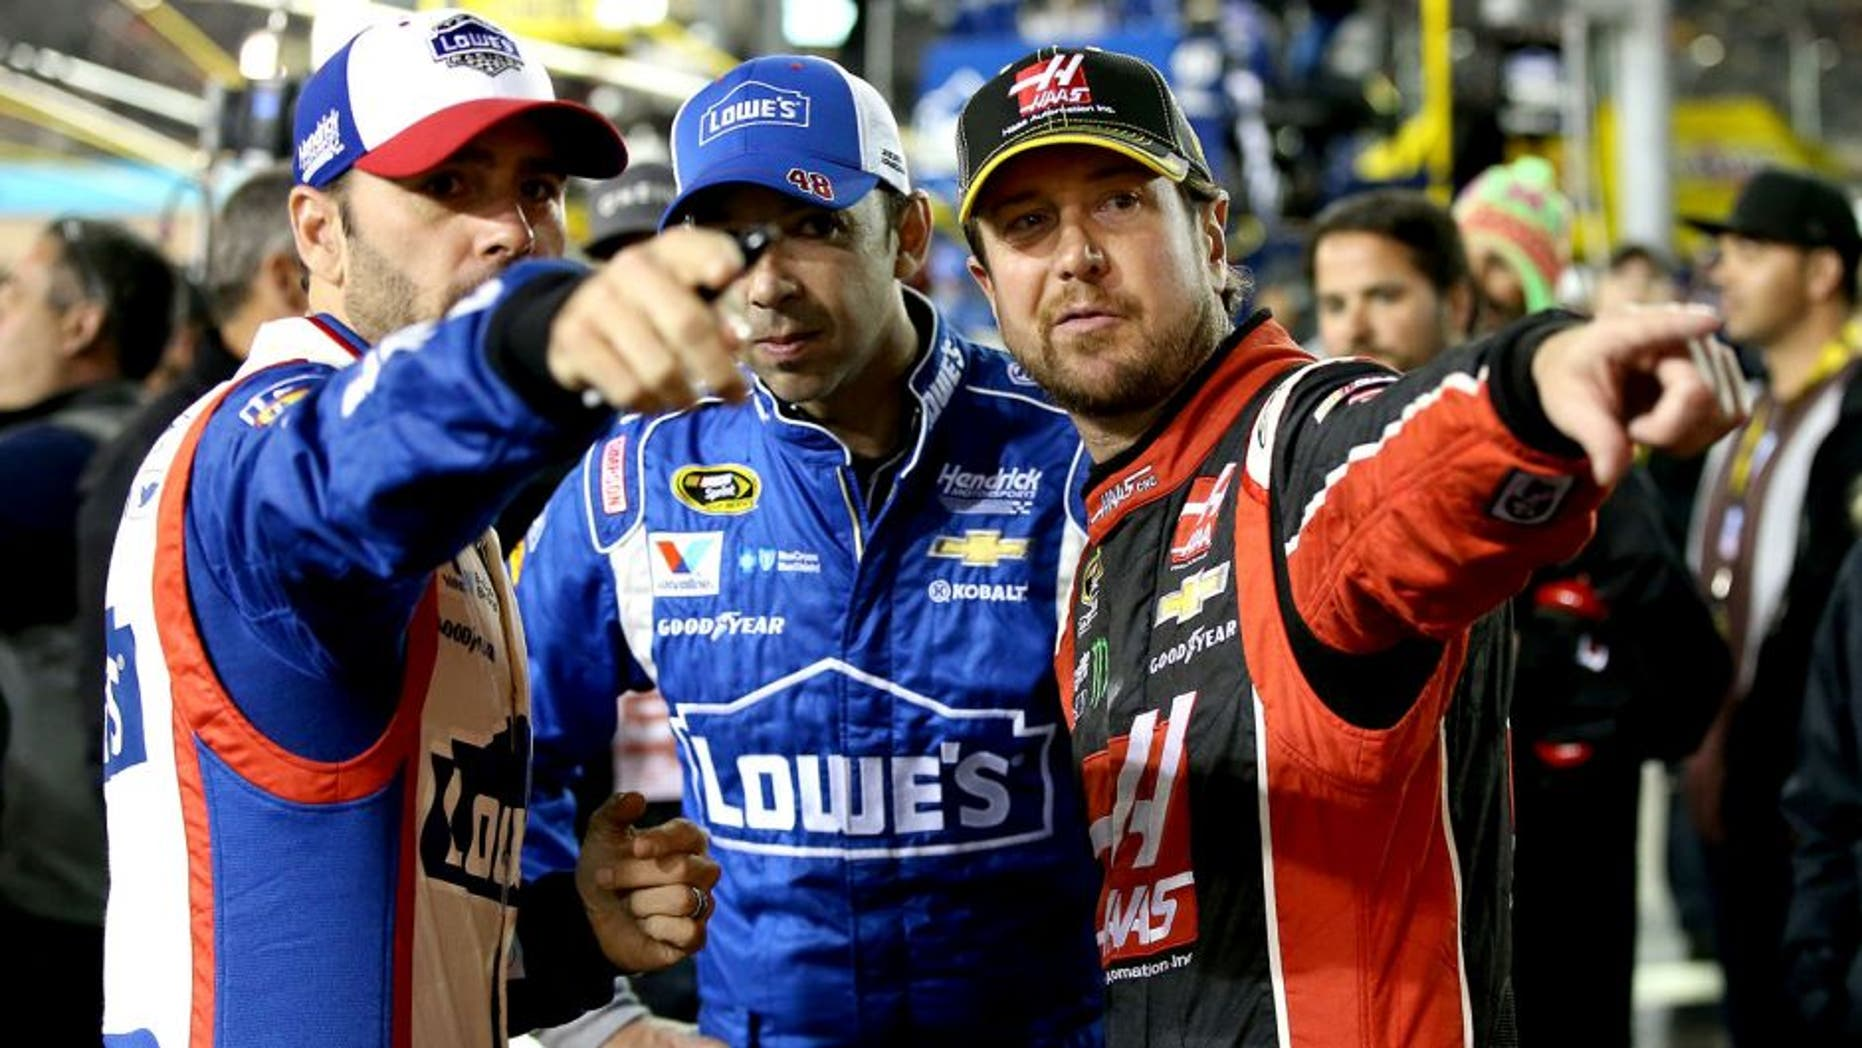 AVONDALE, AZ - NOVEMBER 15: (L-R) Jimmie Johnson, driver of the #48 Lowe's Patriotic Chevrolet, crew chief Chad Knaus and Kurt Busch, driver of the #41 Haas Automation Chevrolet, talk on pit road before the NASCAR Sprint Cup Series Quicken Loans Race for Heroes 500 at Phoenix International Raceway on November 15, 2015 in Avondale, Arizona. (Photo by Sean Gardner/Getty Images)